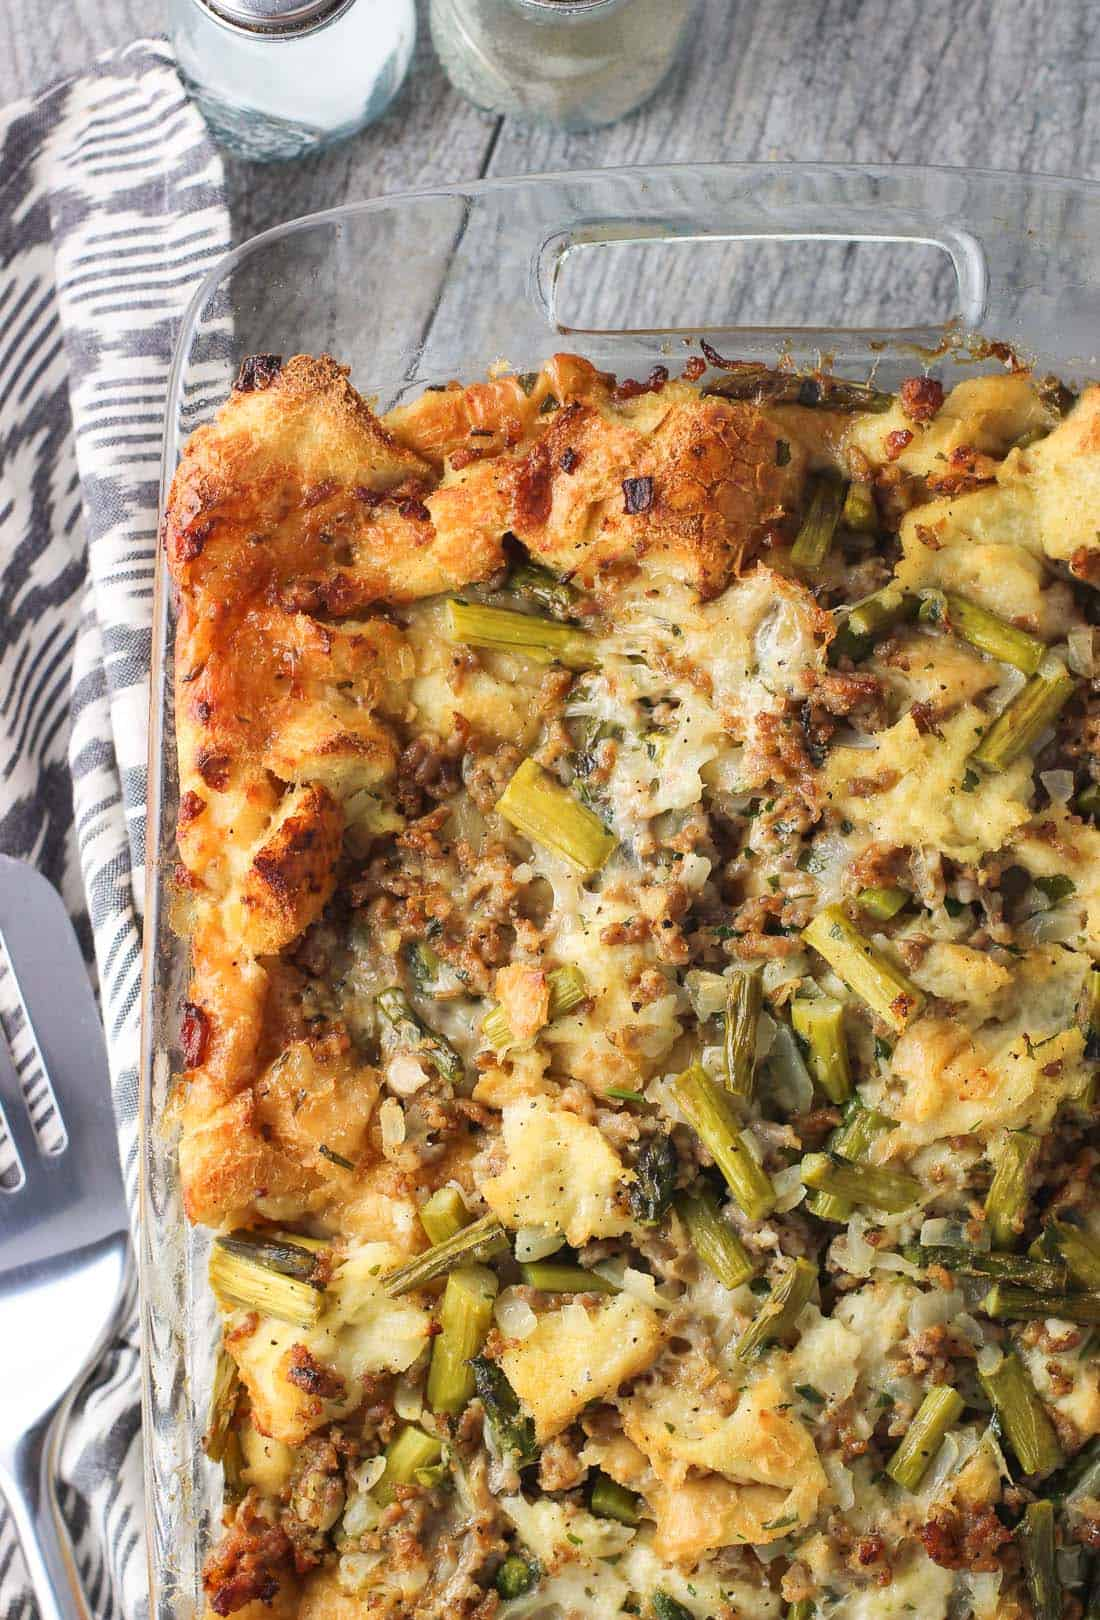 This sausage strata is a savory breakfast bake filled with Italian sausage crumbles, sautéed asparagus, and Asiago cheese. It's the perfect brunch dish for holidays or for entertaining!